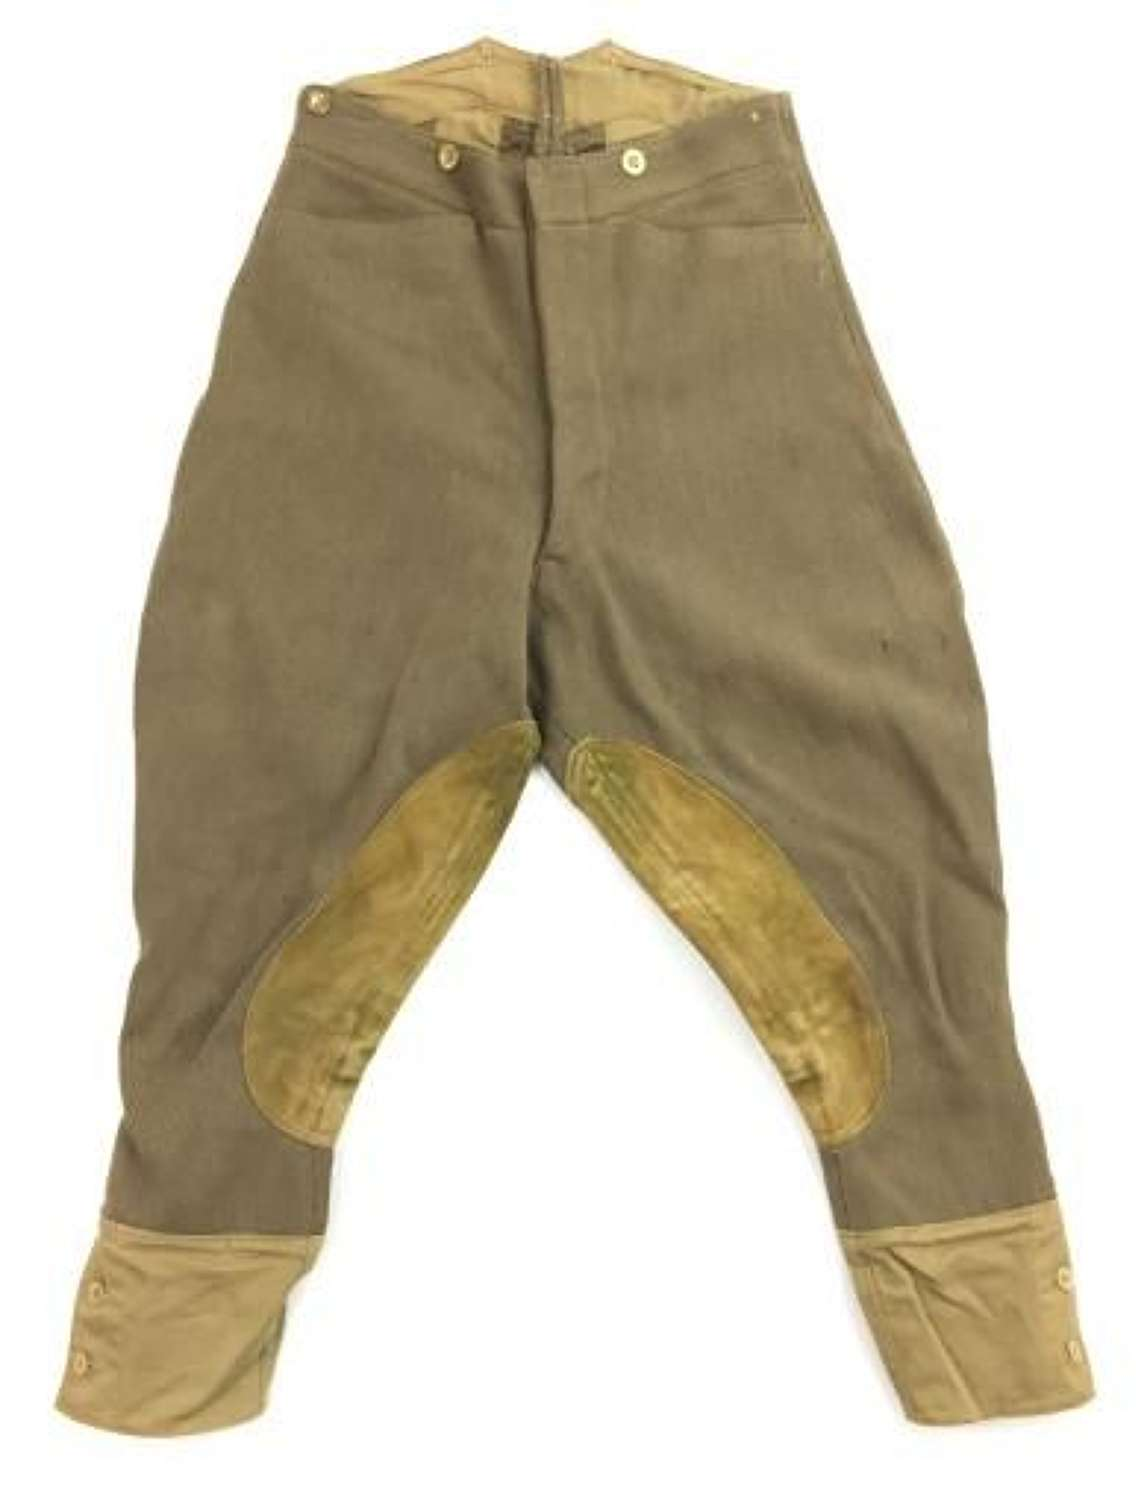 1937 Dated British Army Mounted Breeches